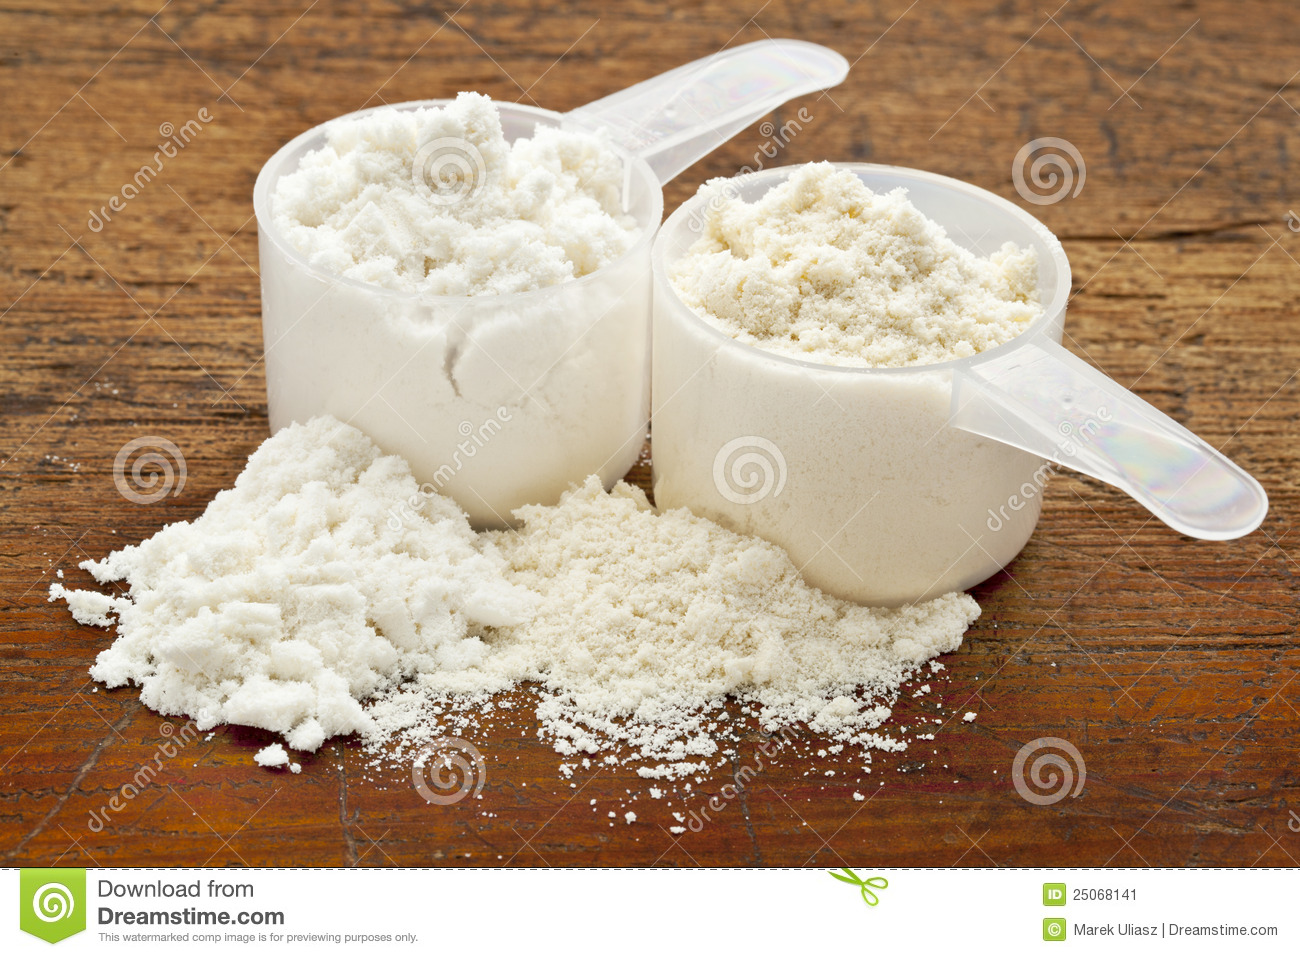 Whey Protein Powder - Two Scoops Stock Image - Image: 25068141